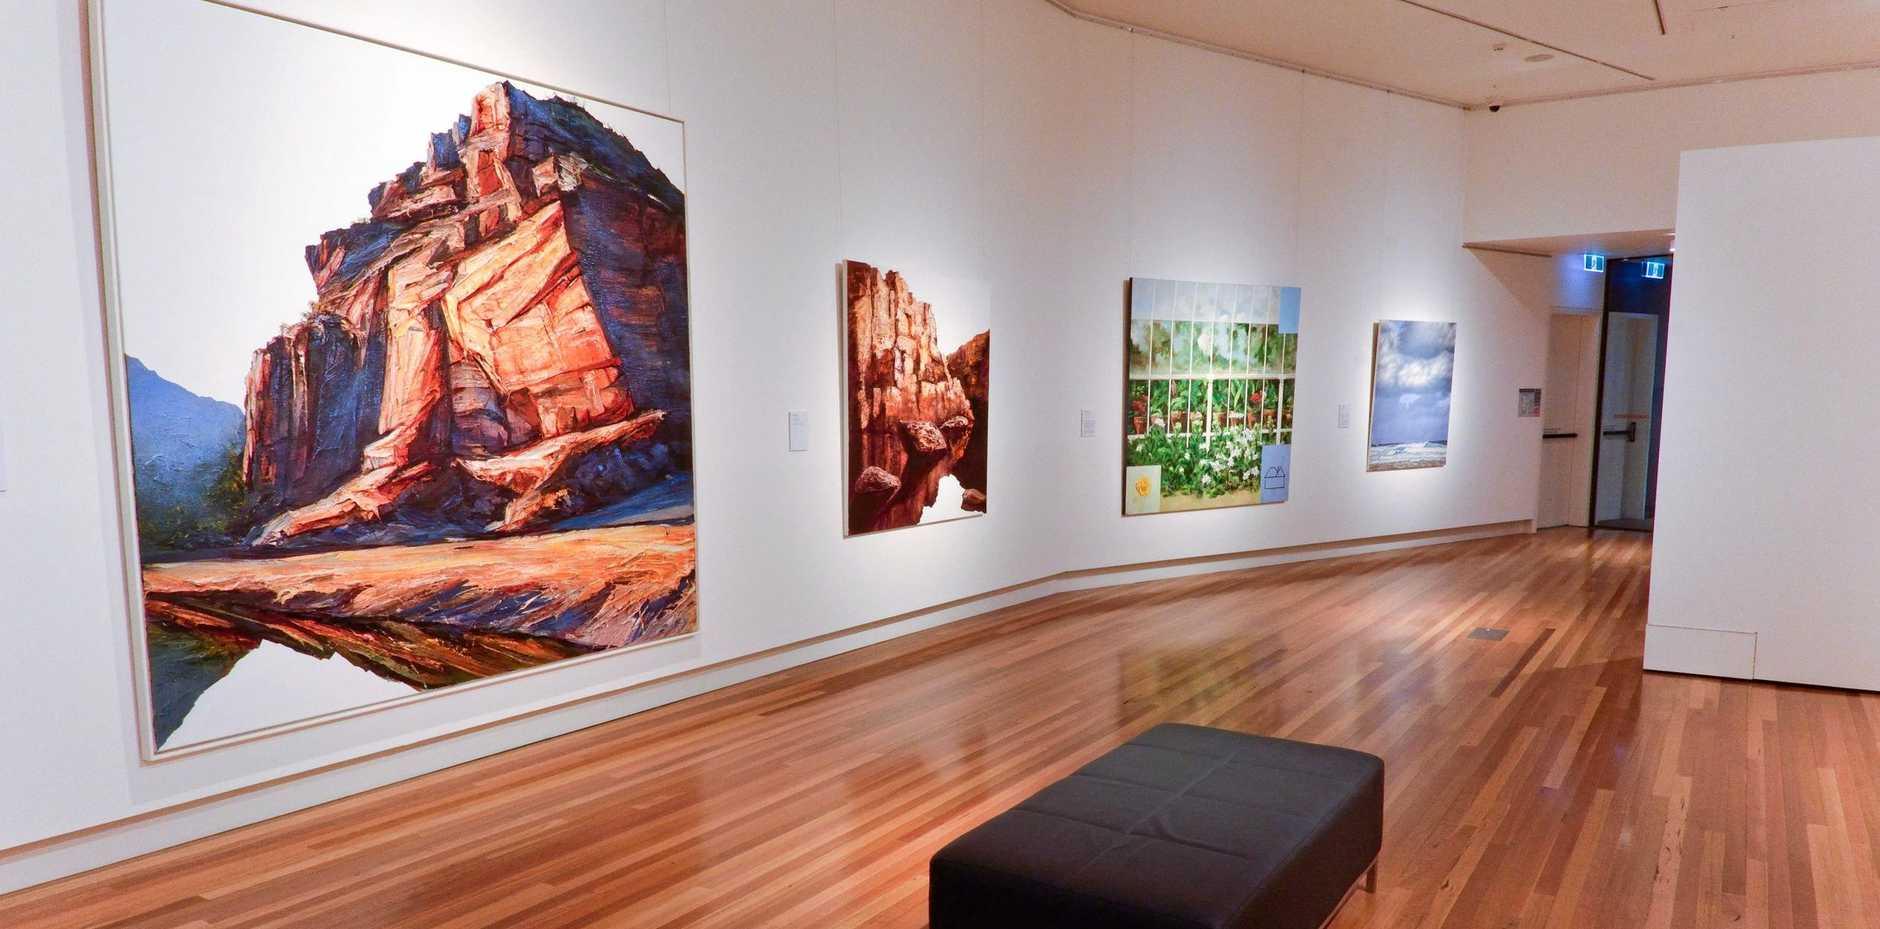 The Glasshouse Regional Gallery - conducting accessible art tours on the last Friday of each month.